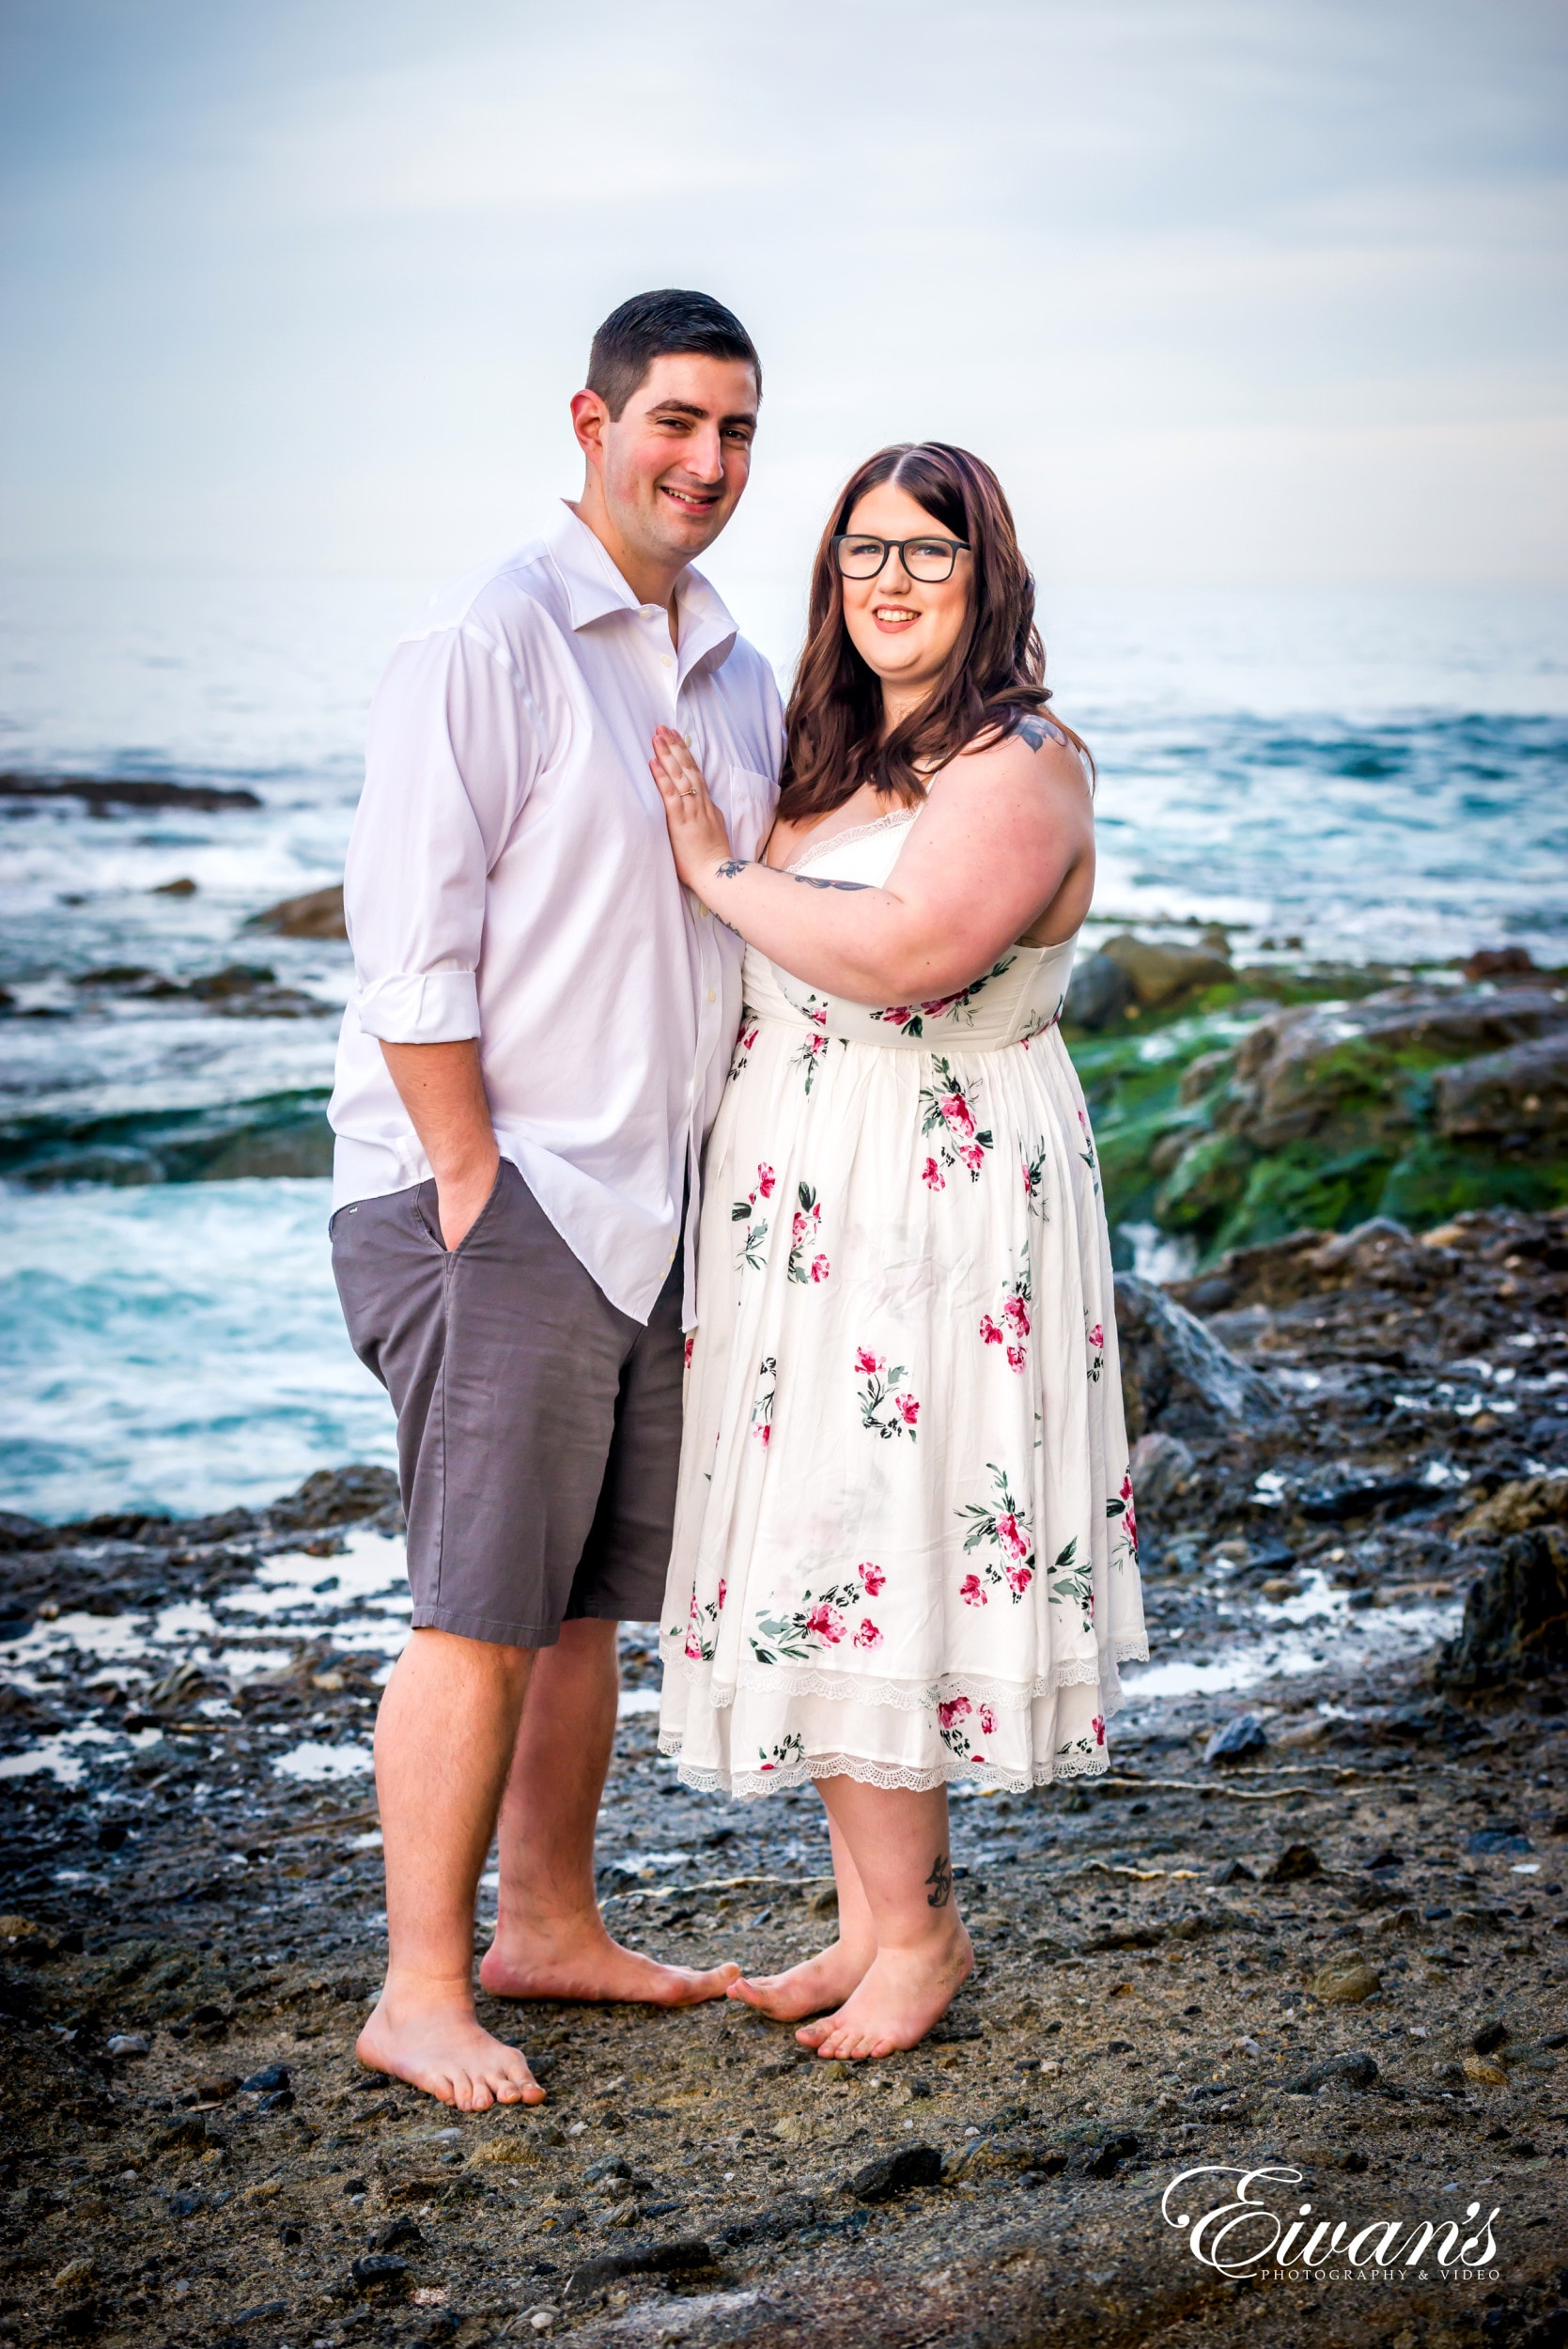 man in white dress shirt beside woman in white and pink floral dress standing on beach